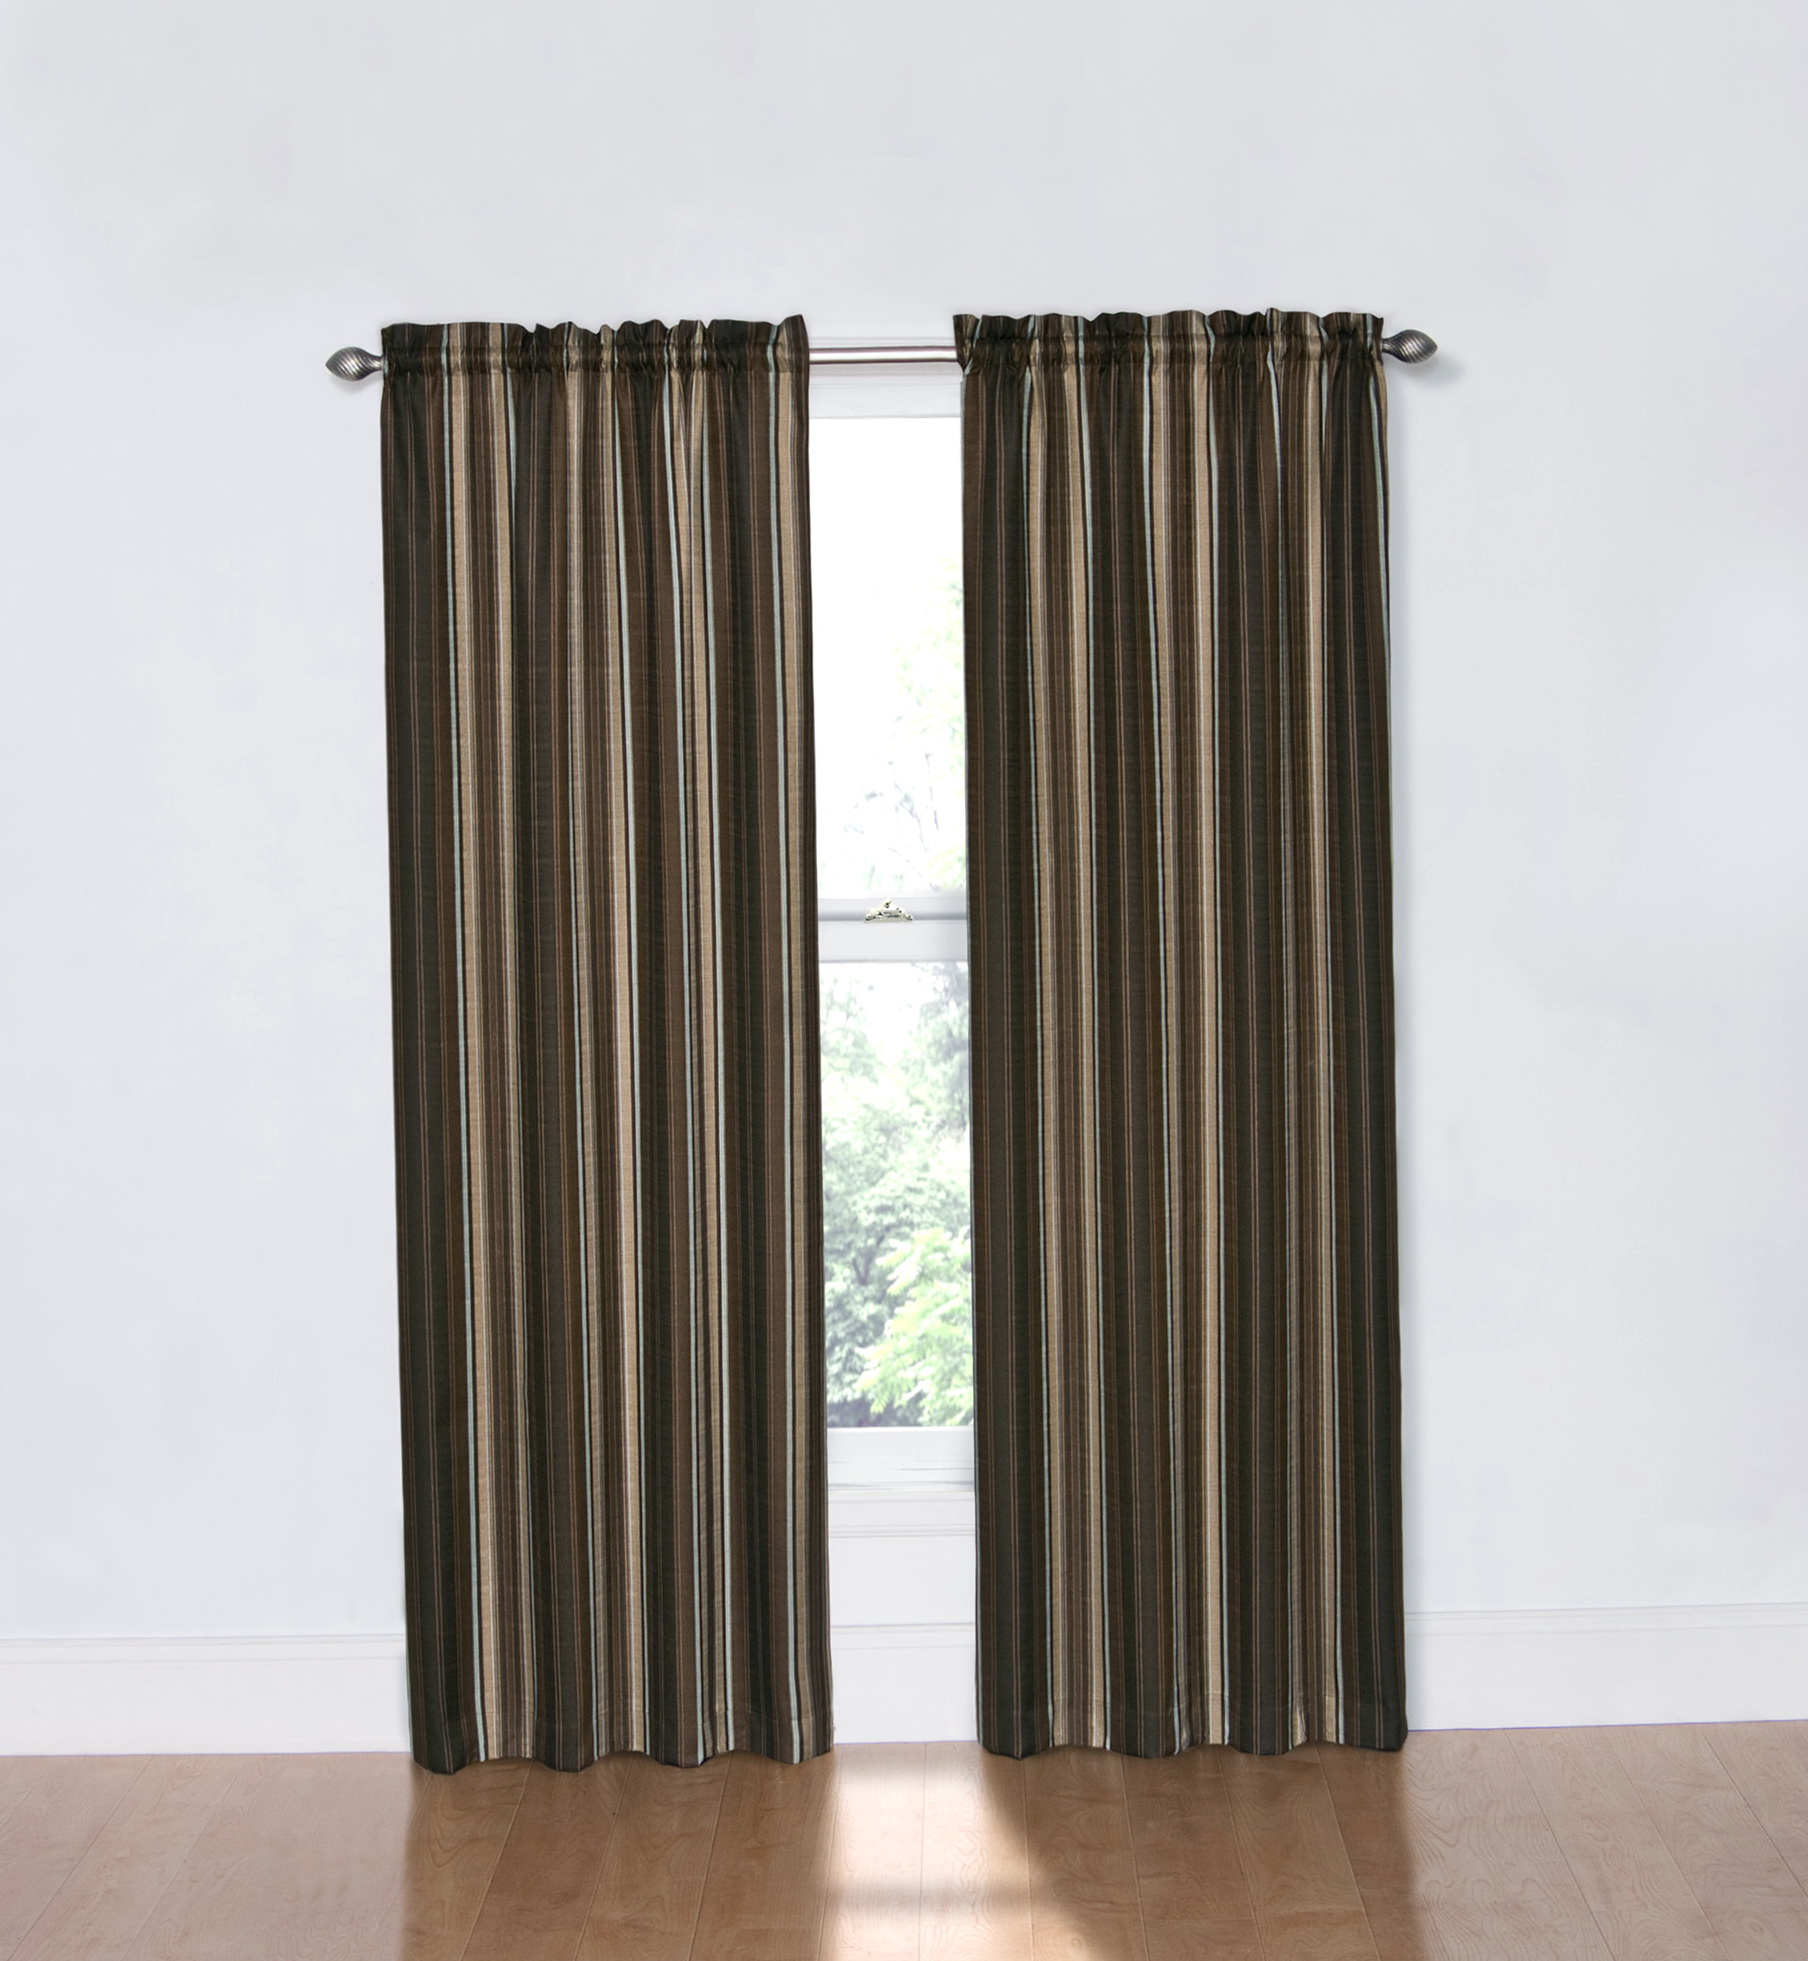 Eclipse Room Darkening Curtains Walmart Home Design Ideas